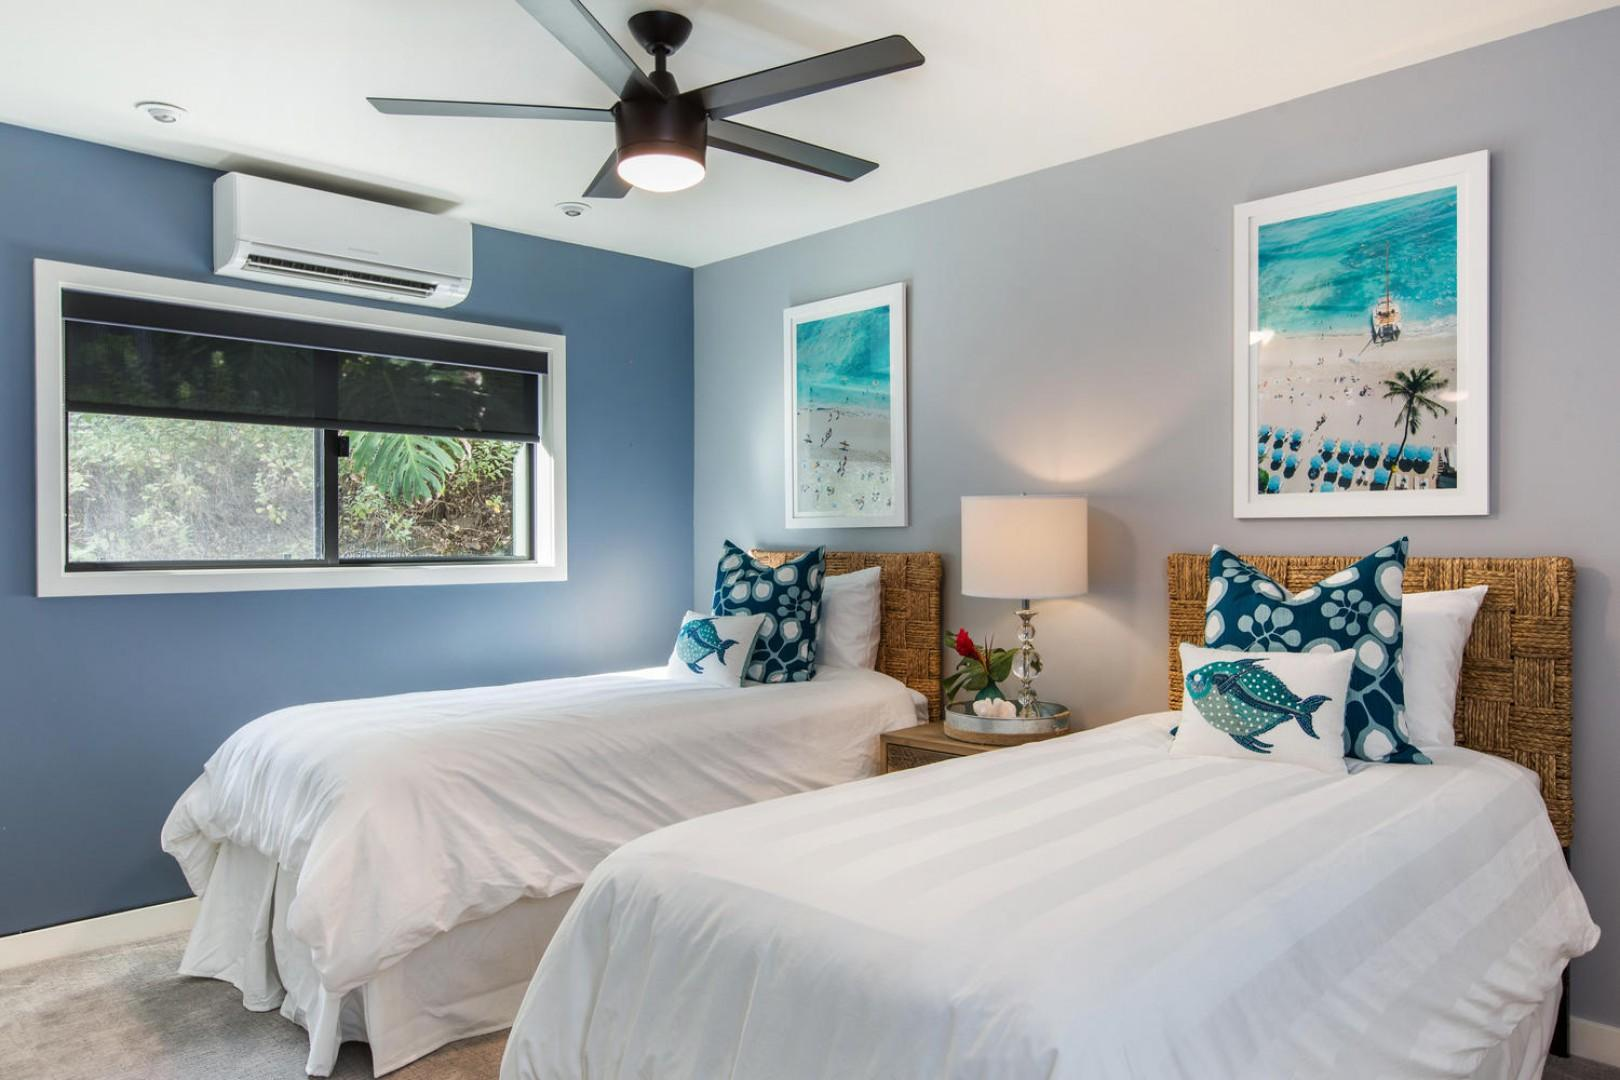 Bedroom four - surf's up! Extra long twin beds are convertible to a king upon request.